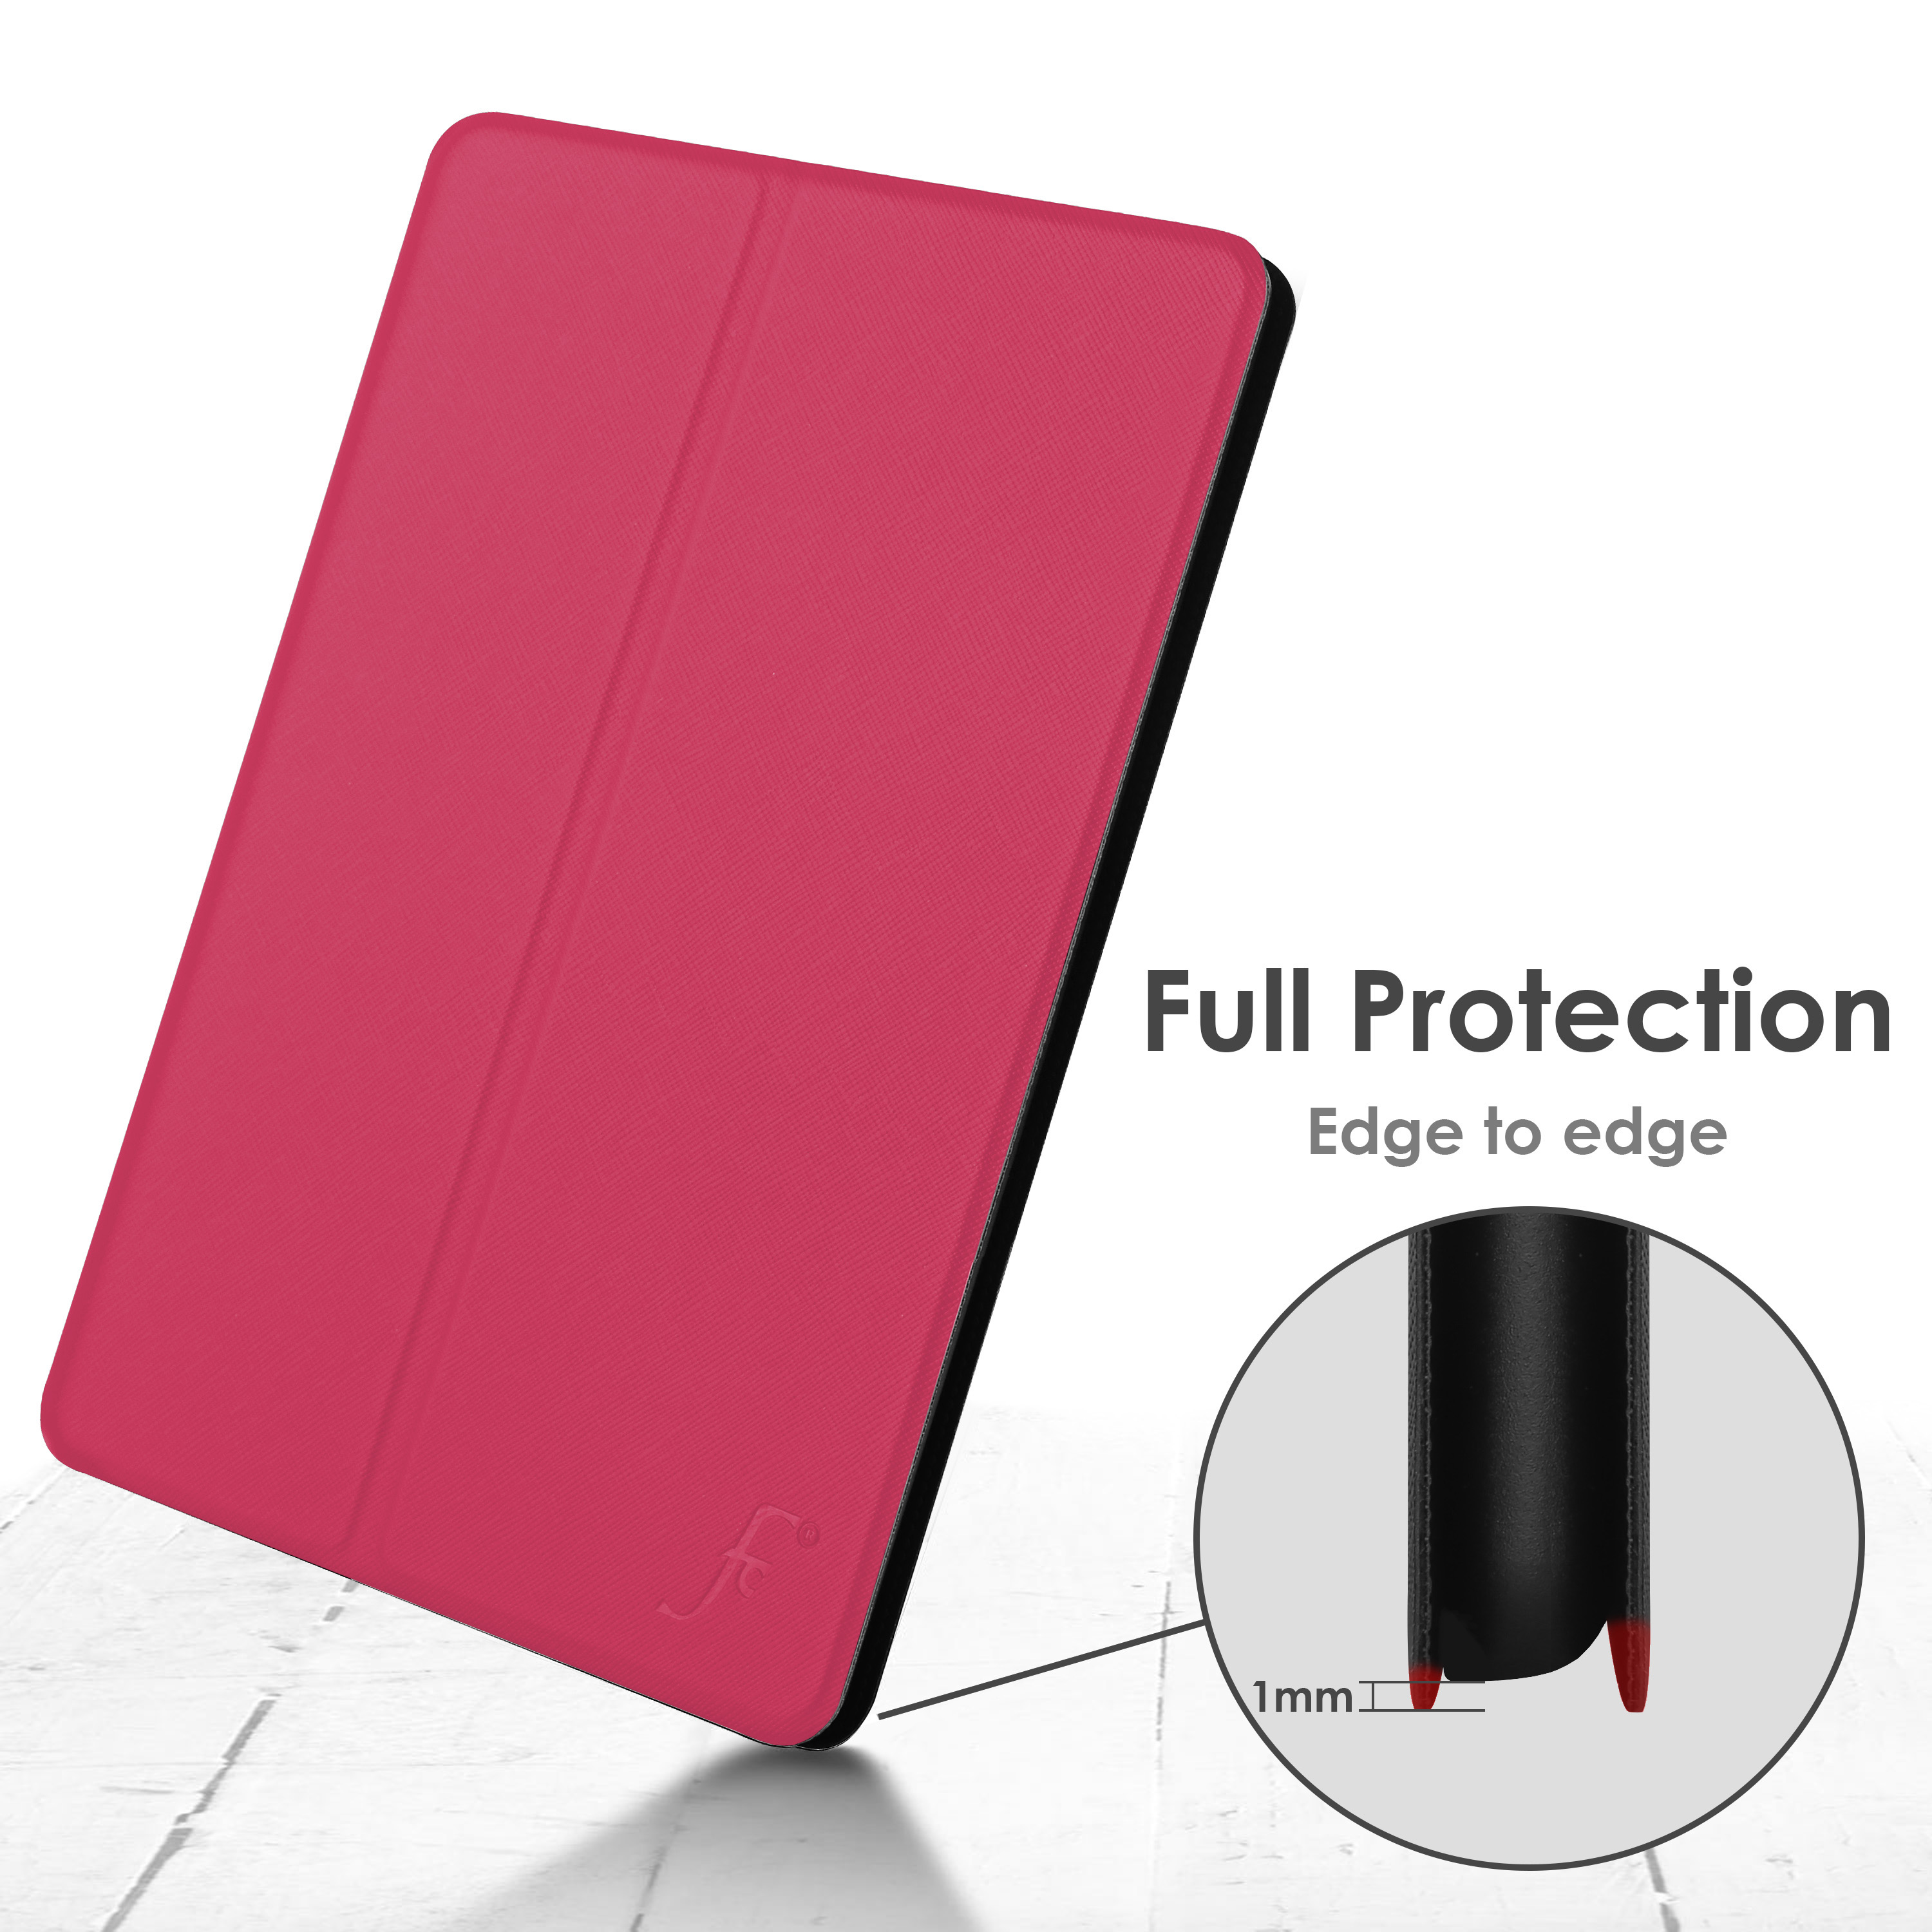 miniature 54 - Samsung Galaxy Tab A 10.1 2019 Étui Magnétique Protection & Support + Stylet